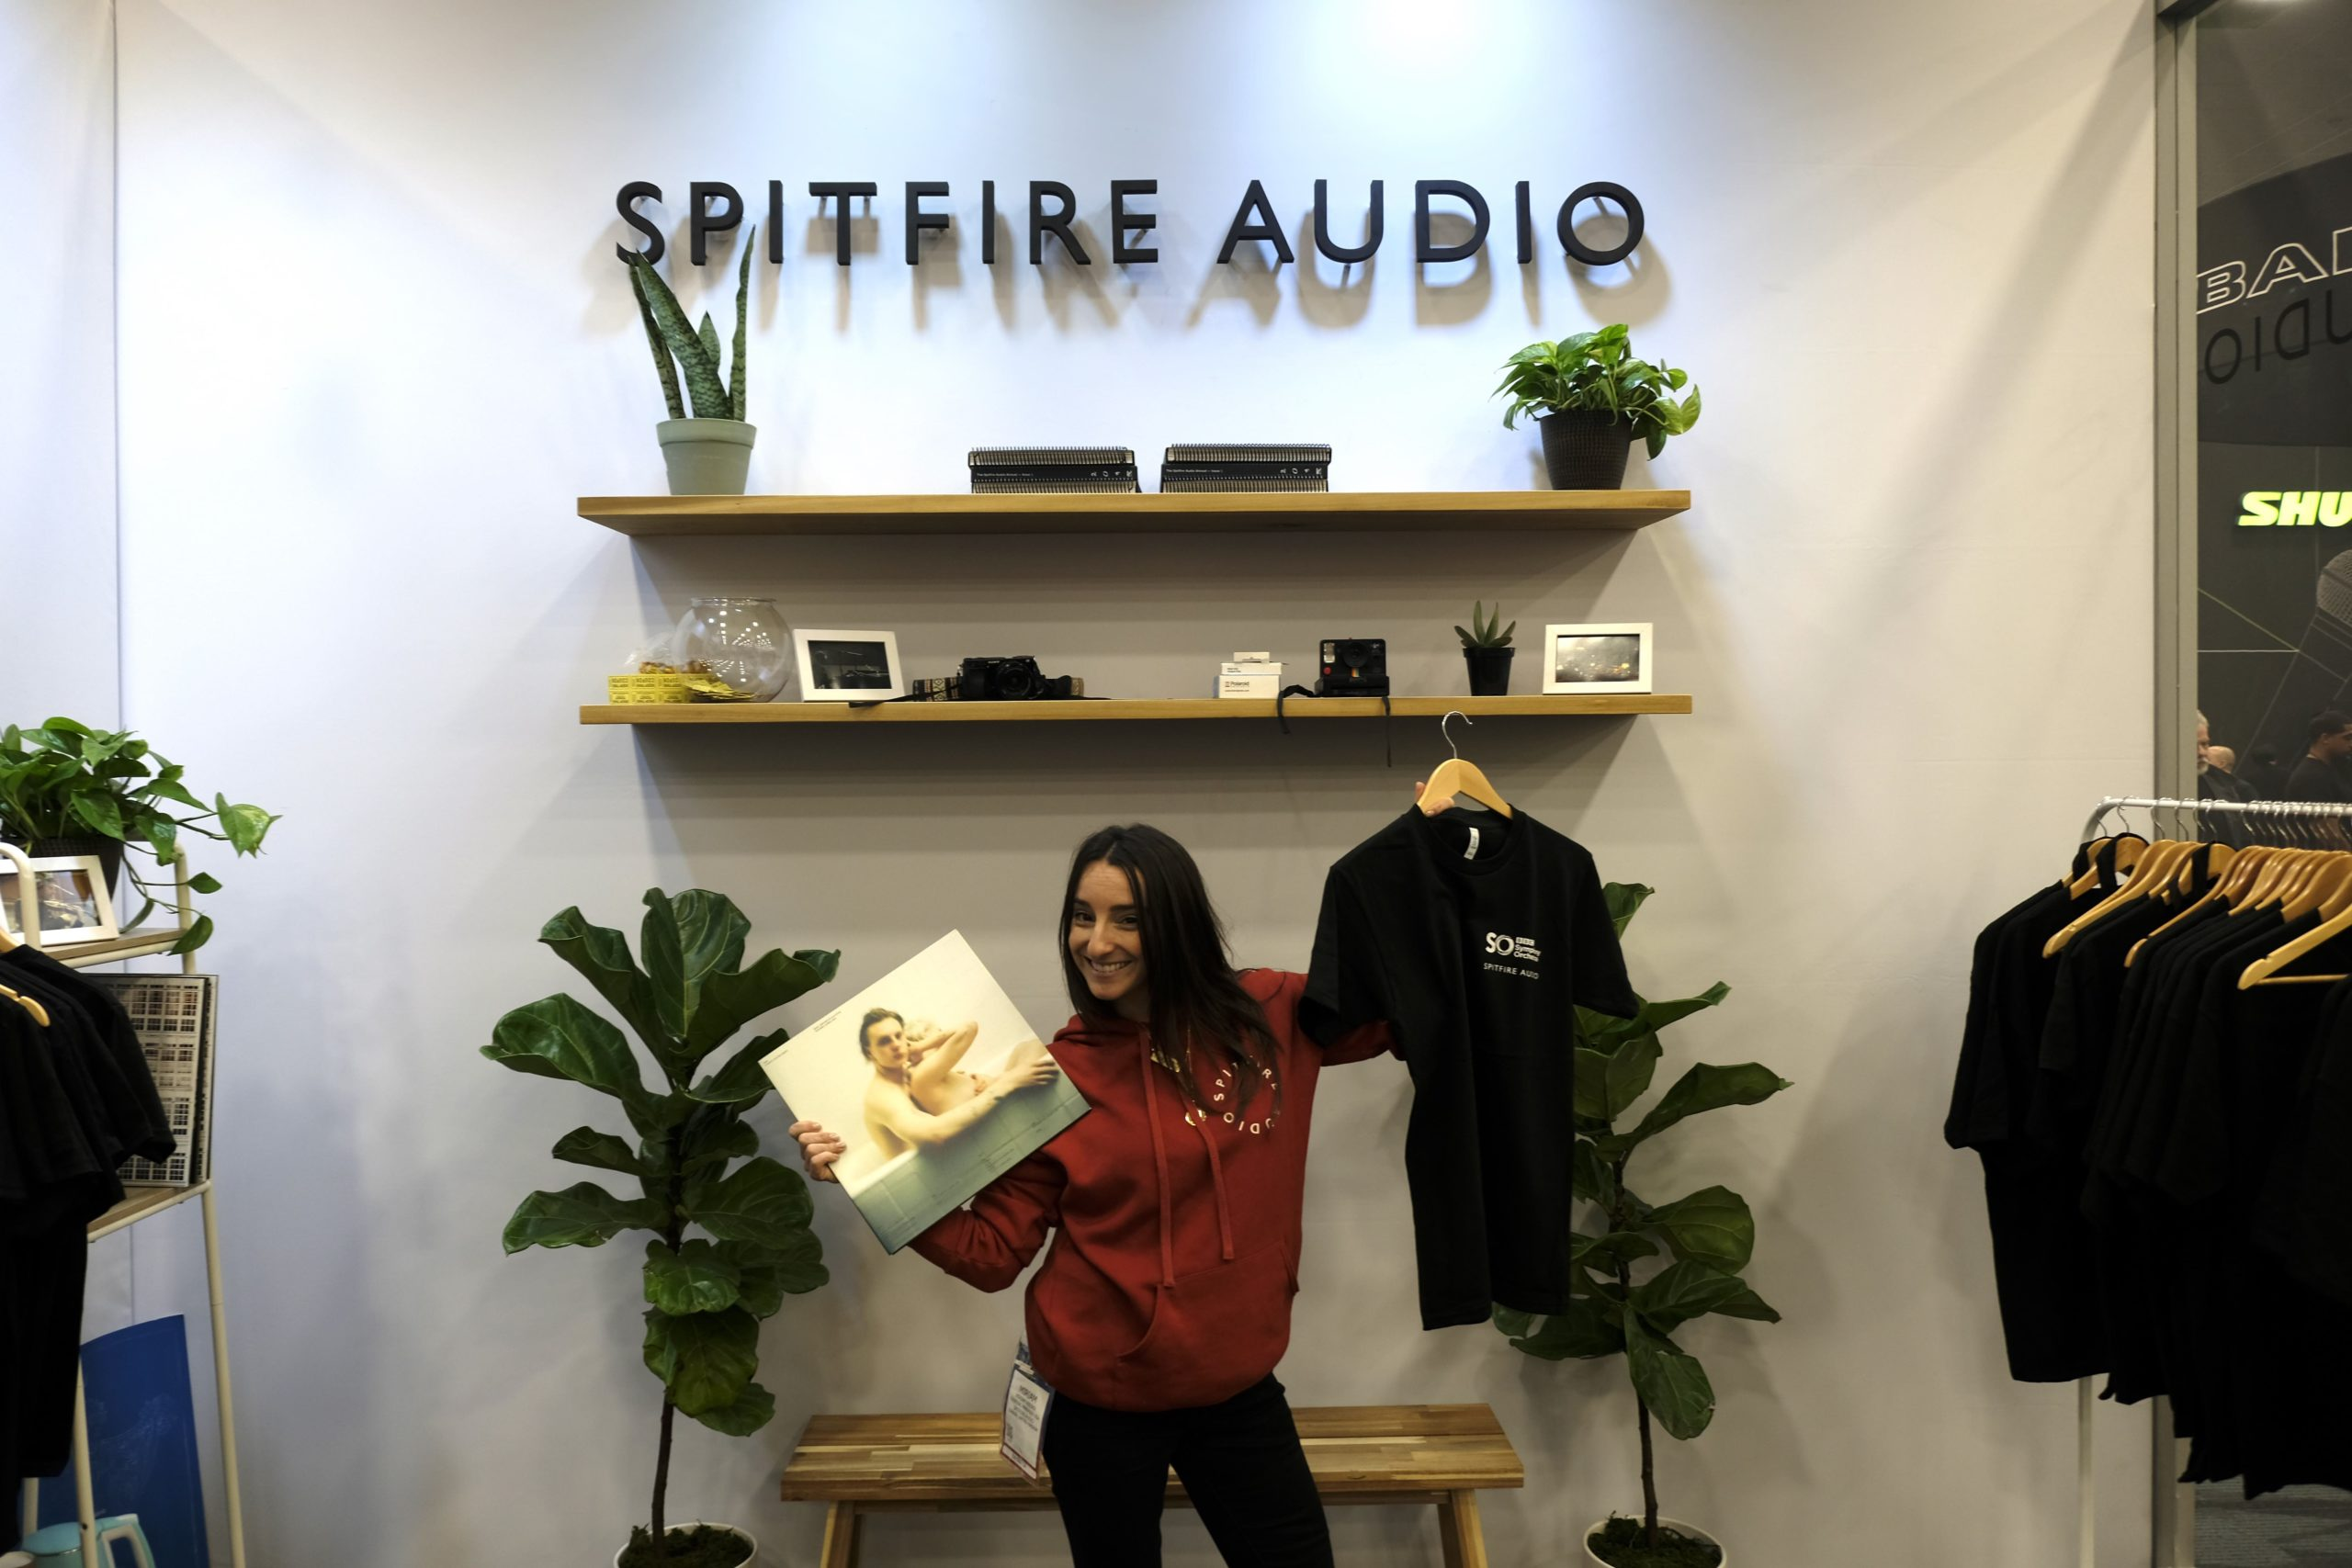 Spitfire Audio booth at NAMM